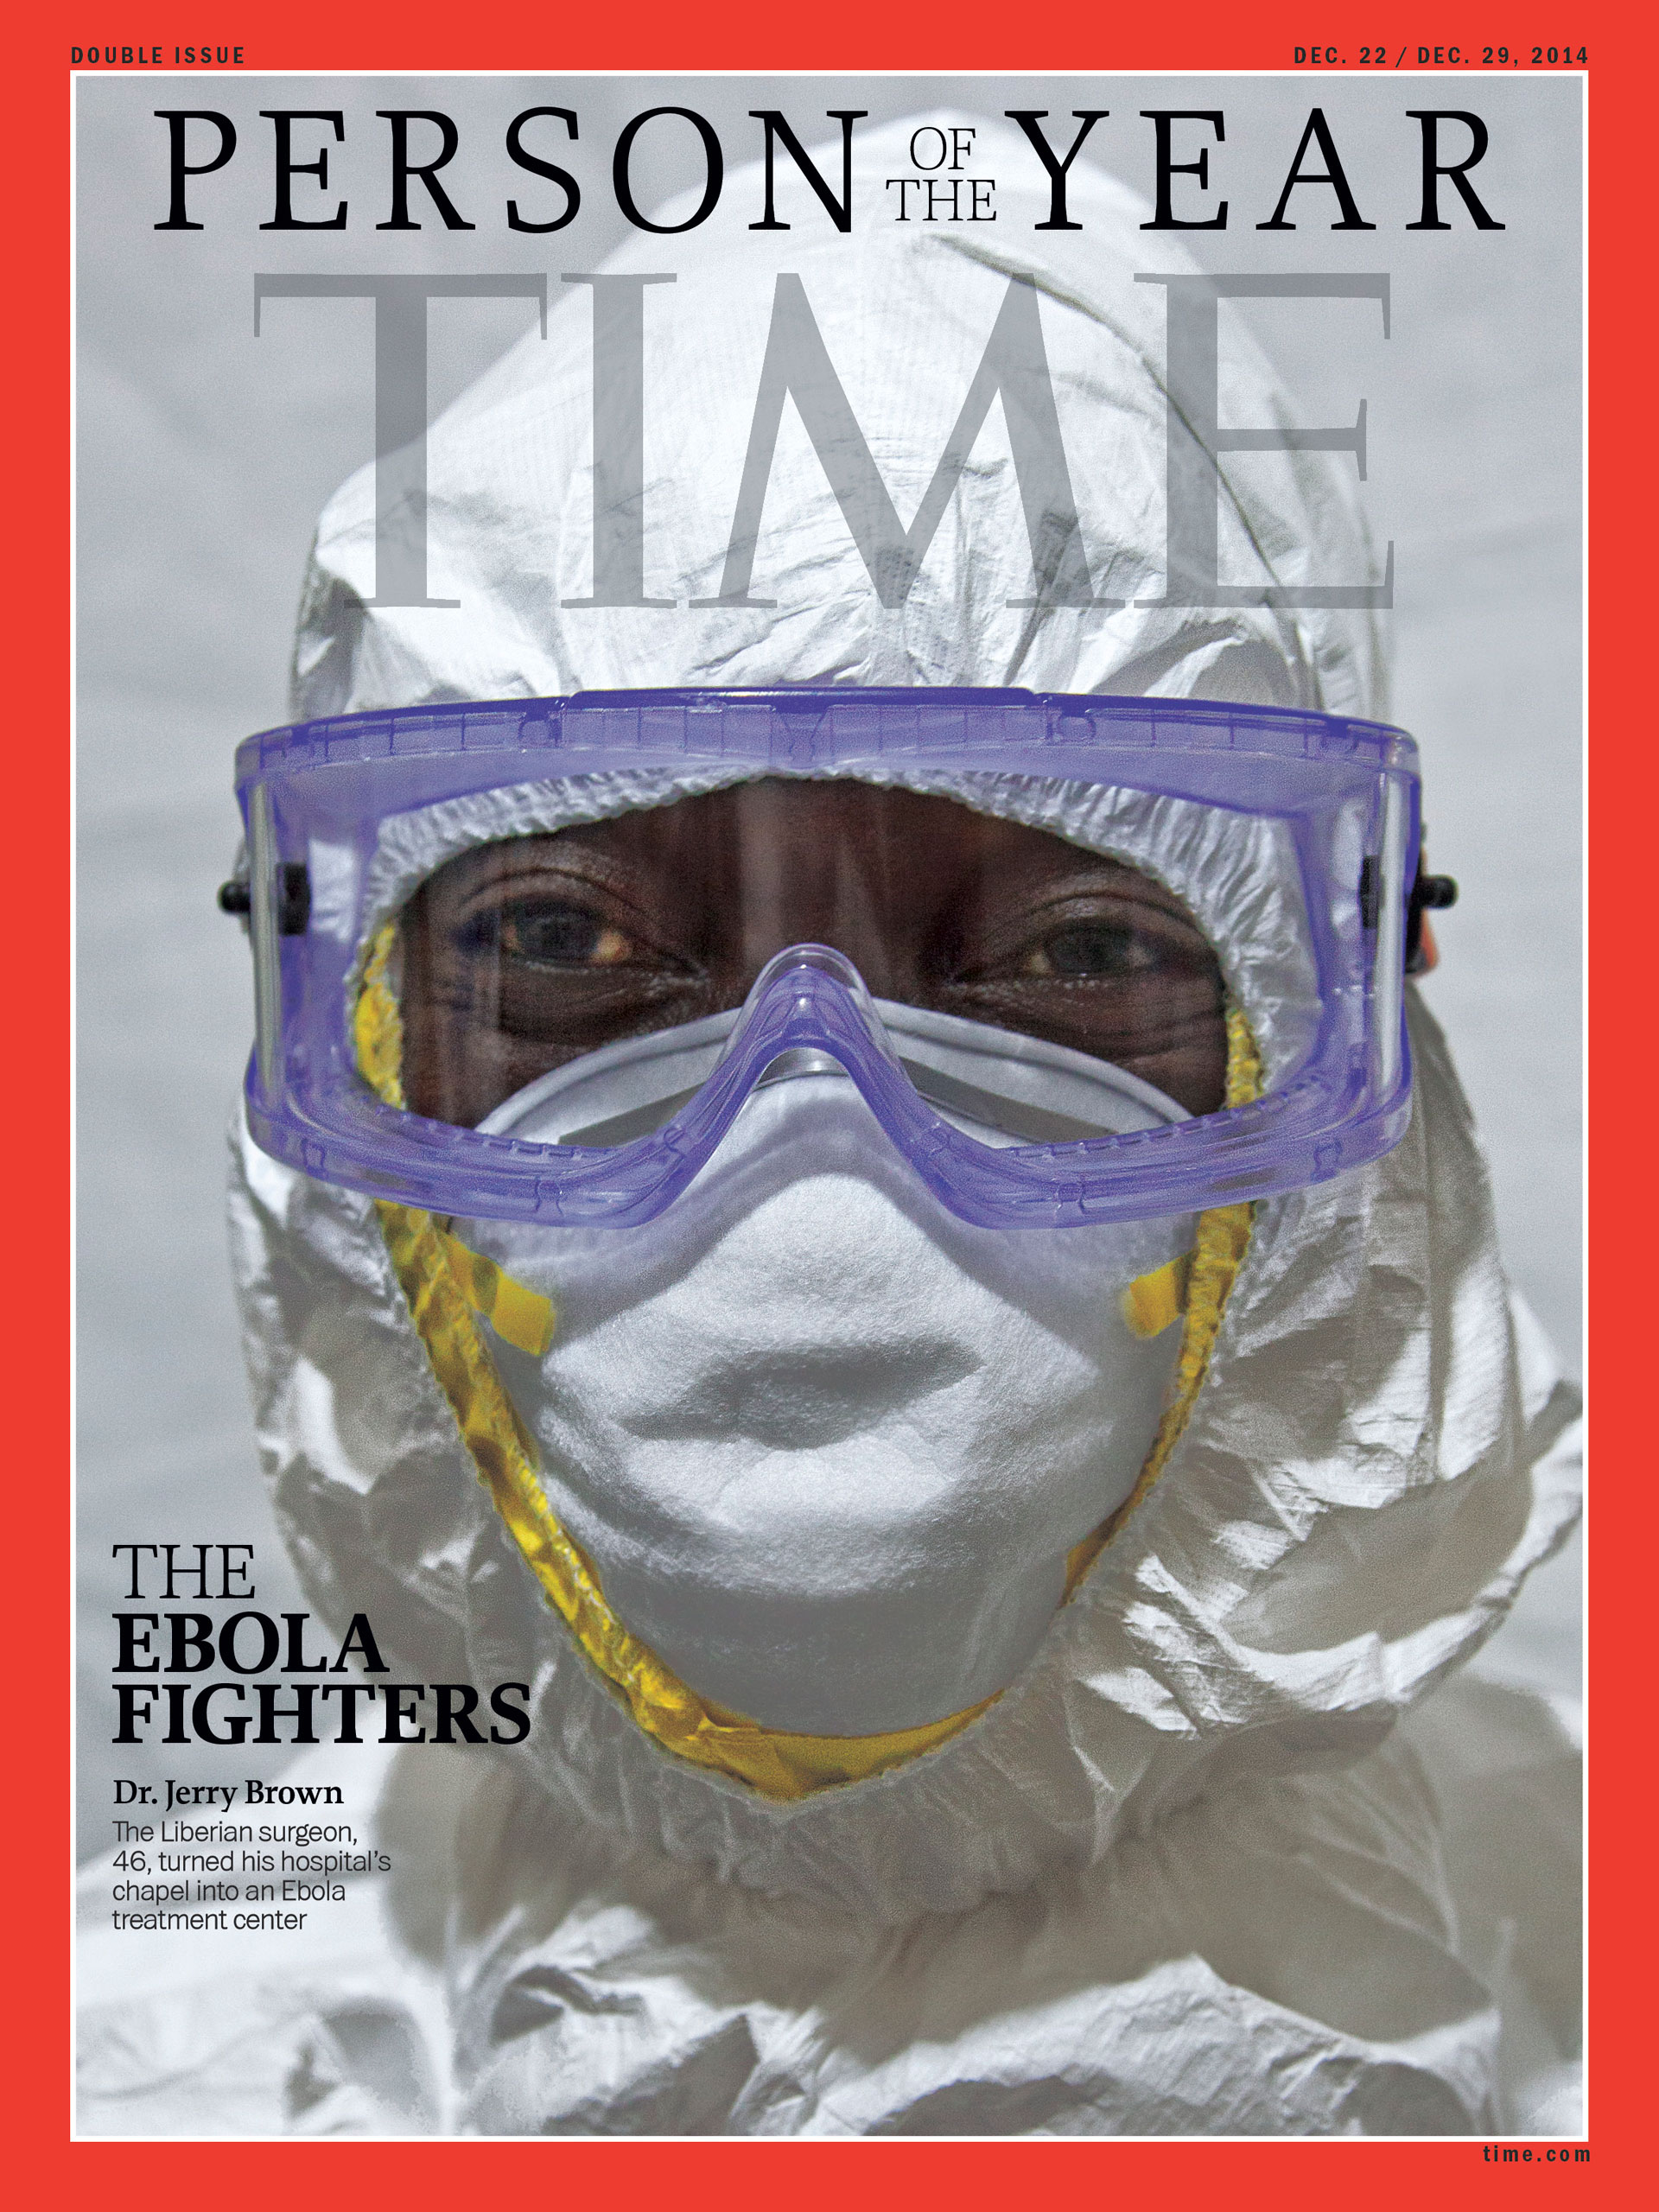 2014: The Ebola Fighters